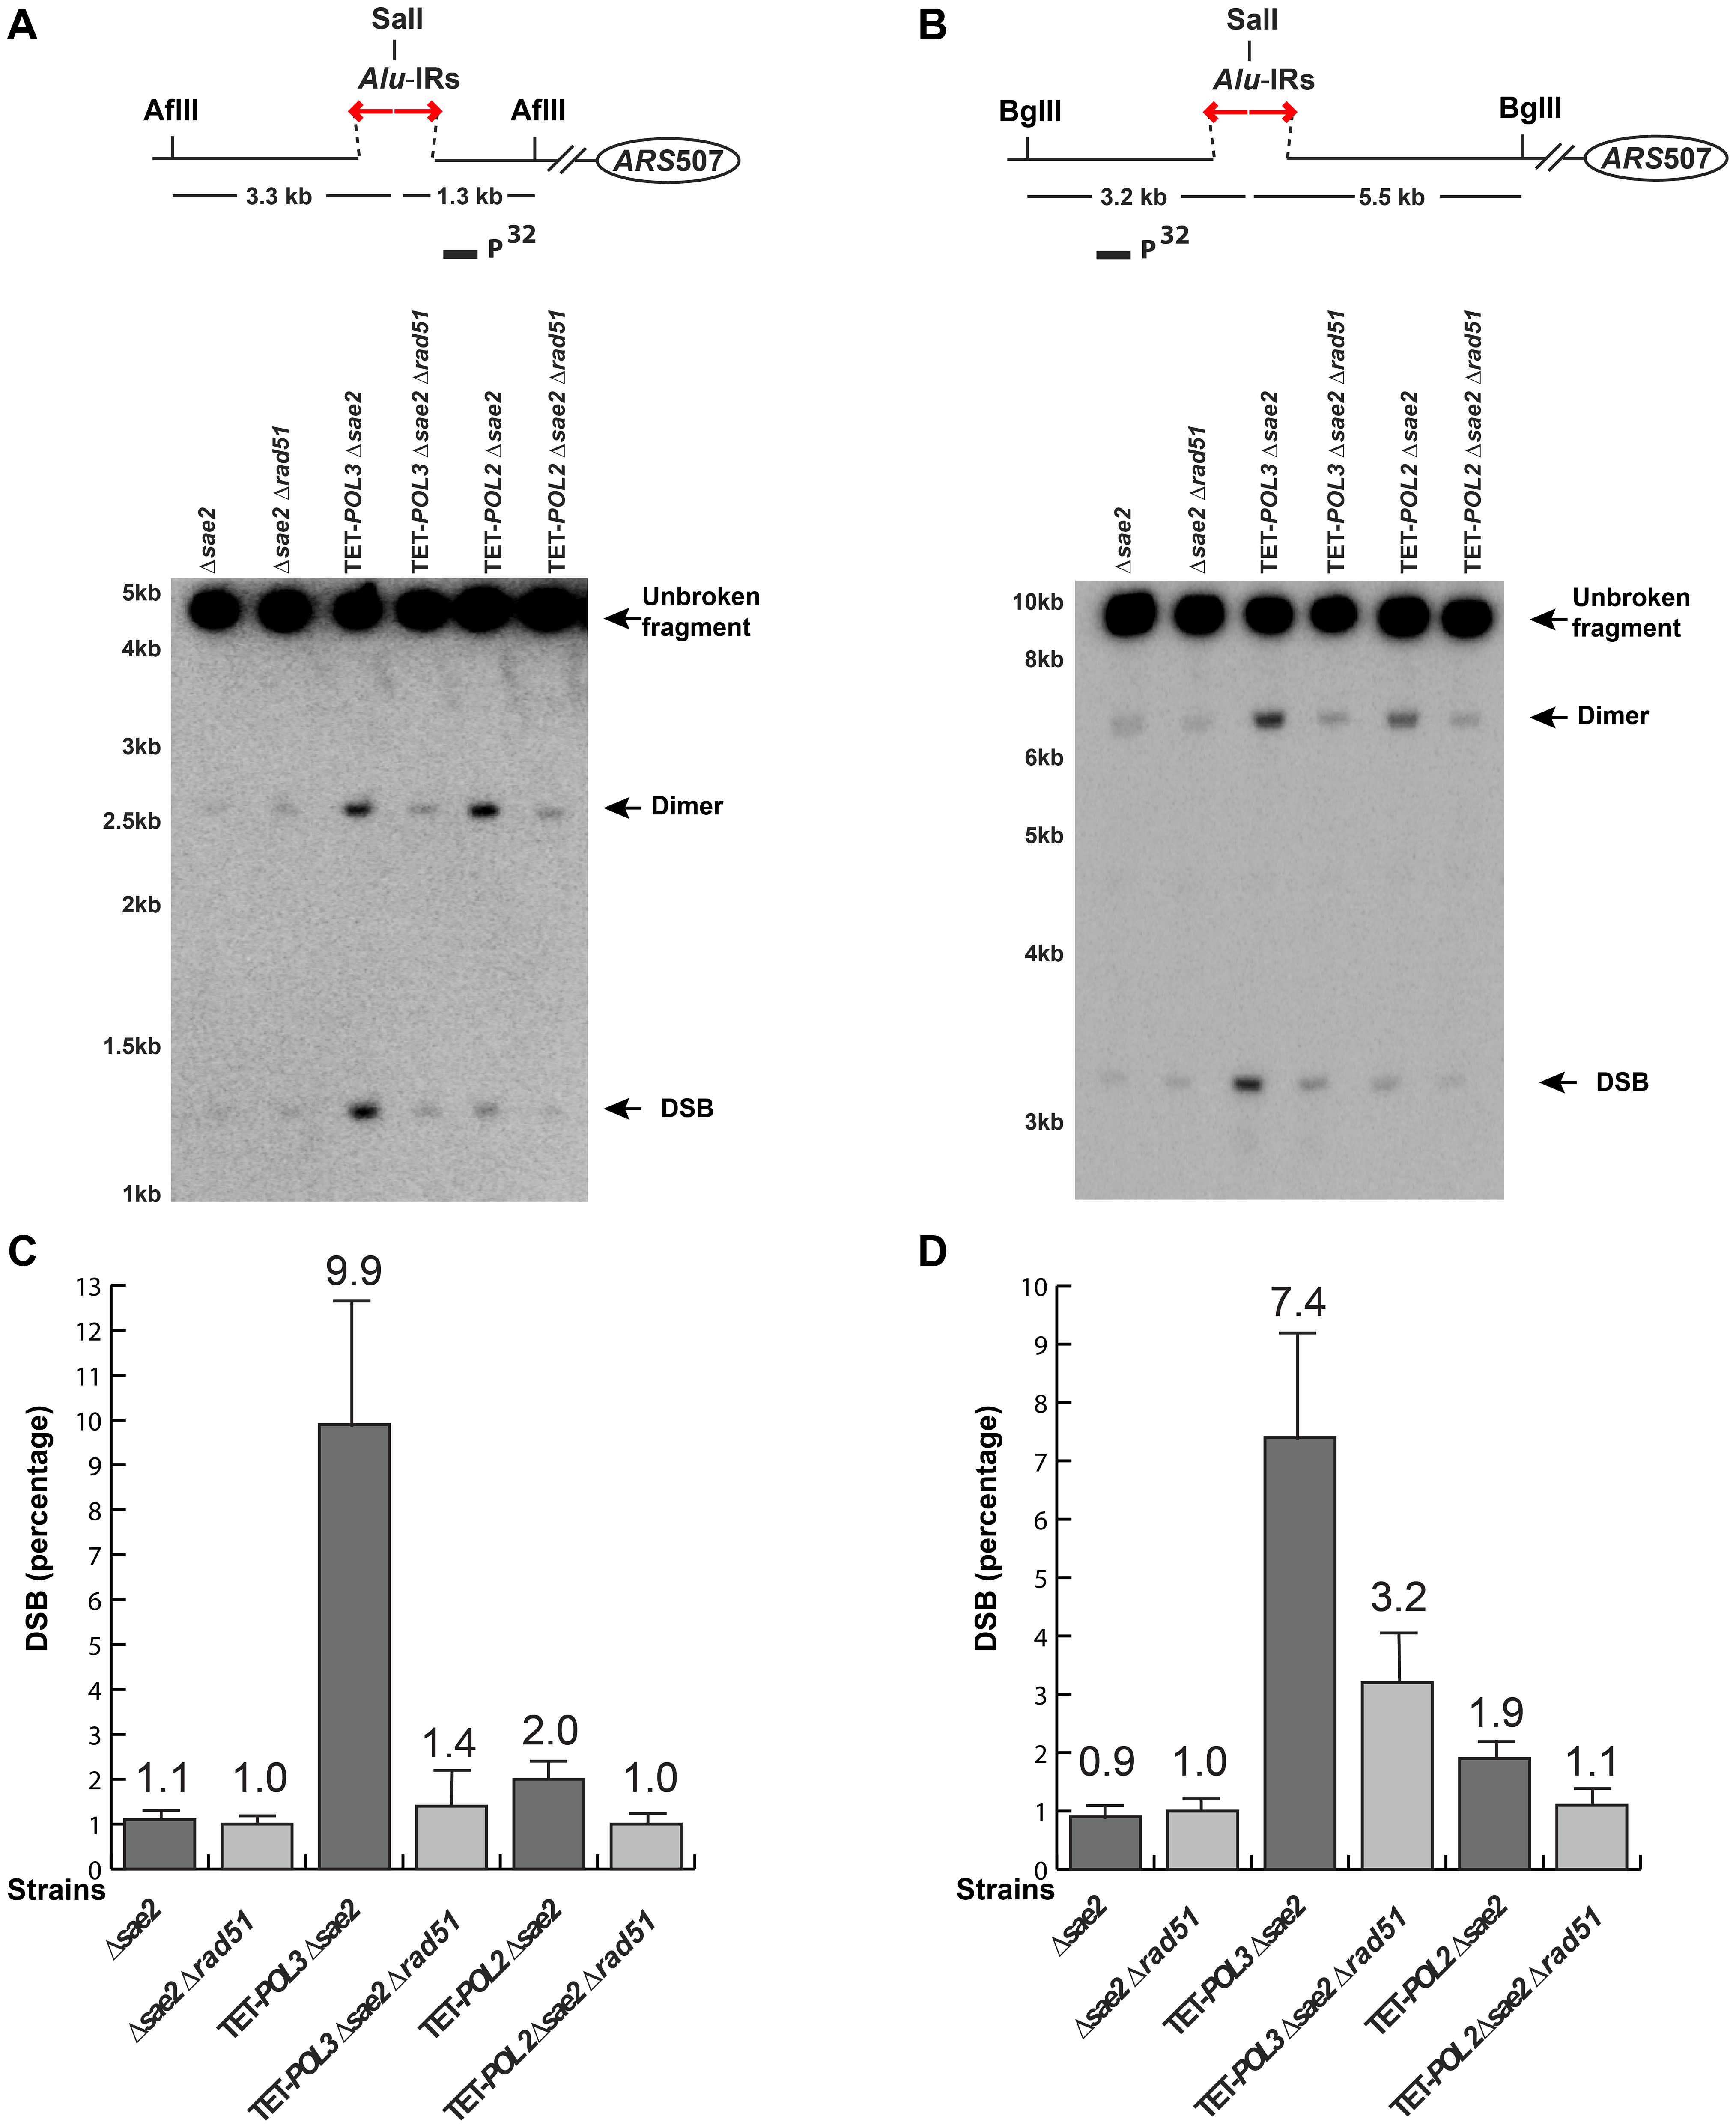 Detection of DSB accumulation in wild-type and mutant strains upon deletion of <i>RAD51</i>.